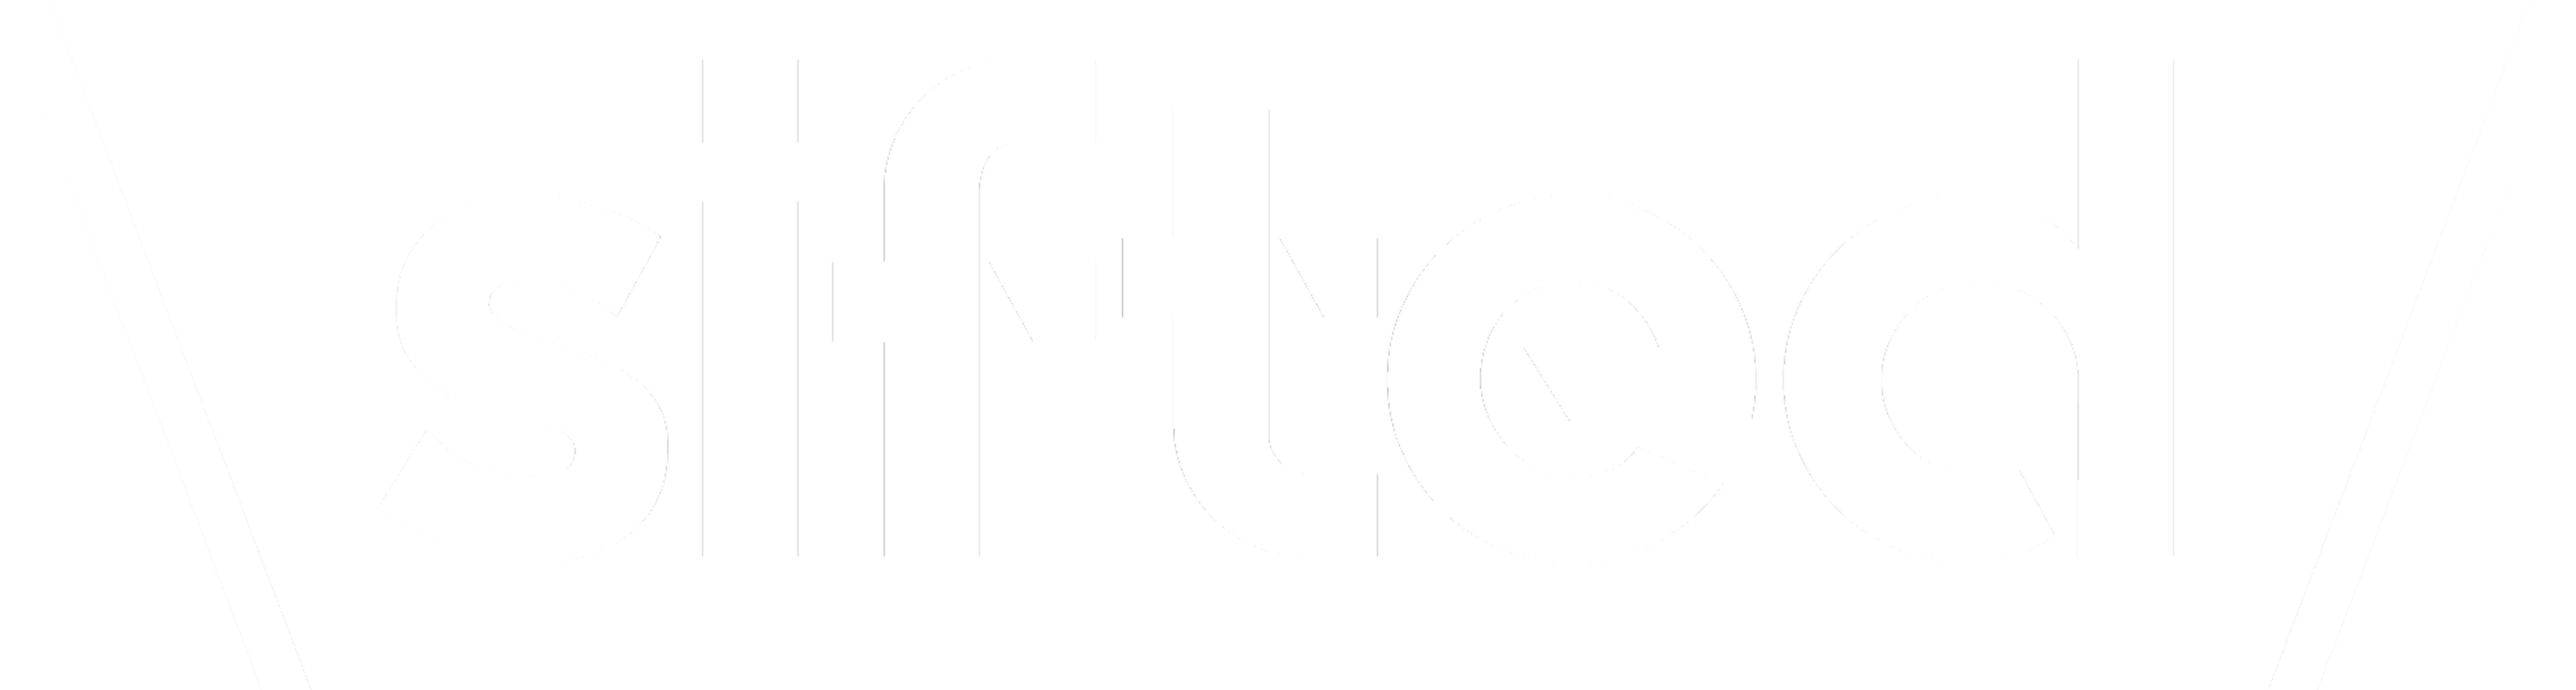 sifted logo white